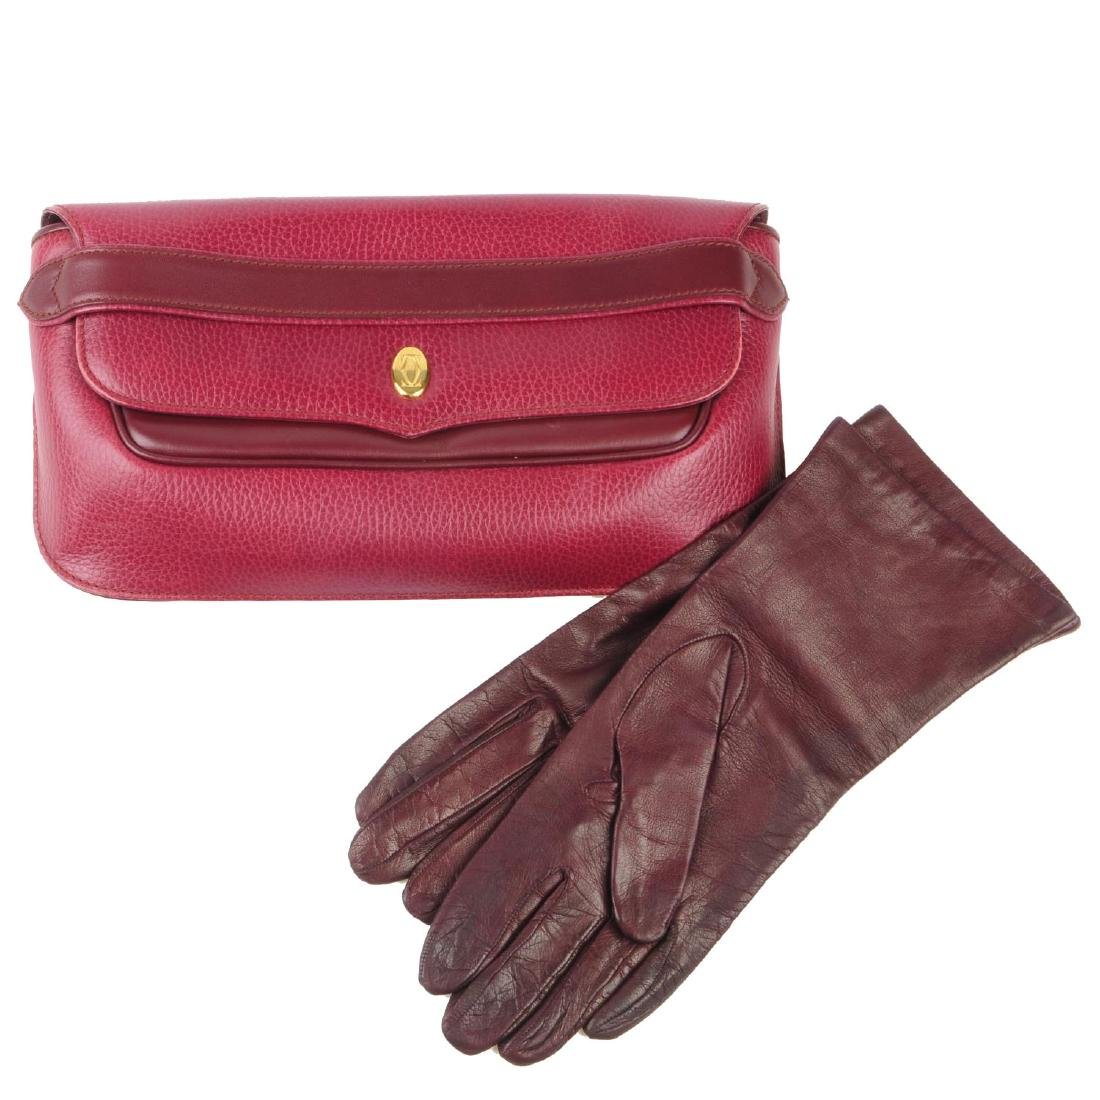 CARTIER - a Bordeaux leather clutch and a pair of